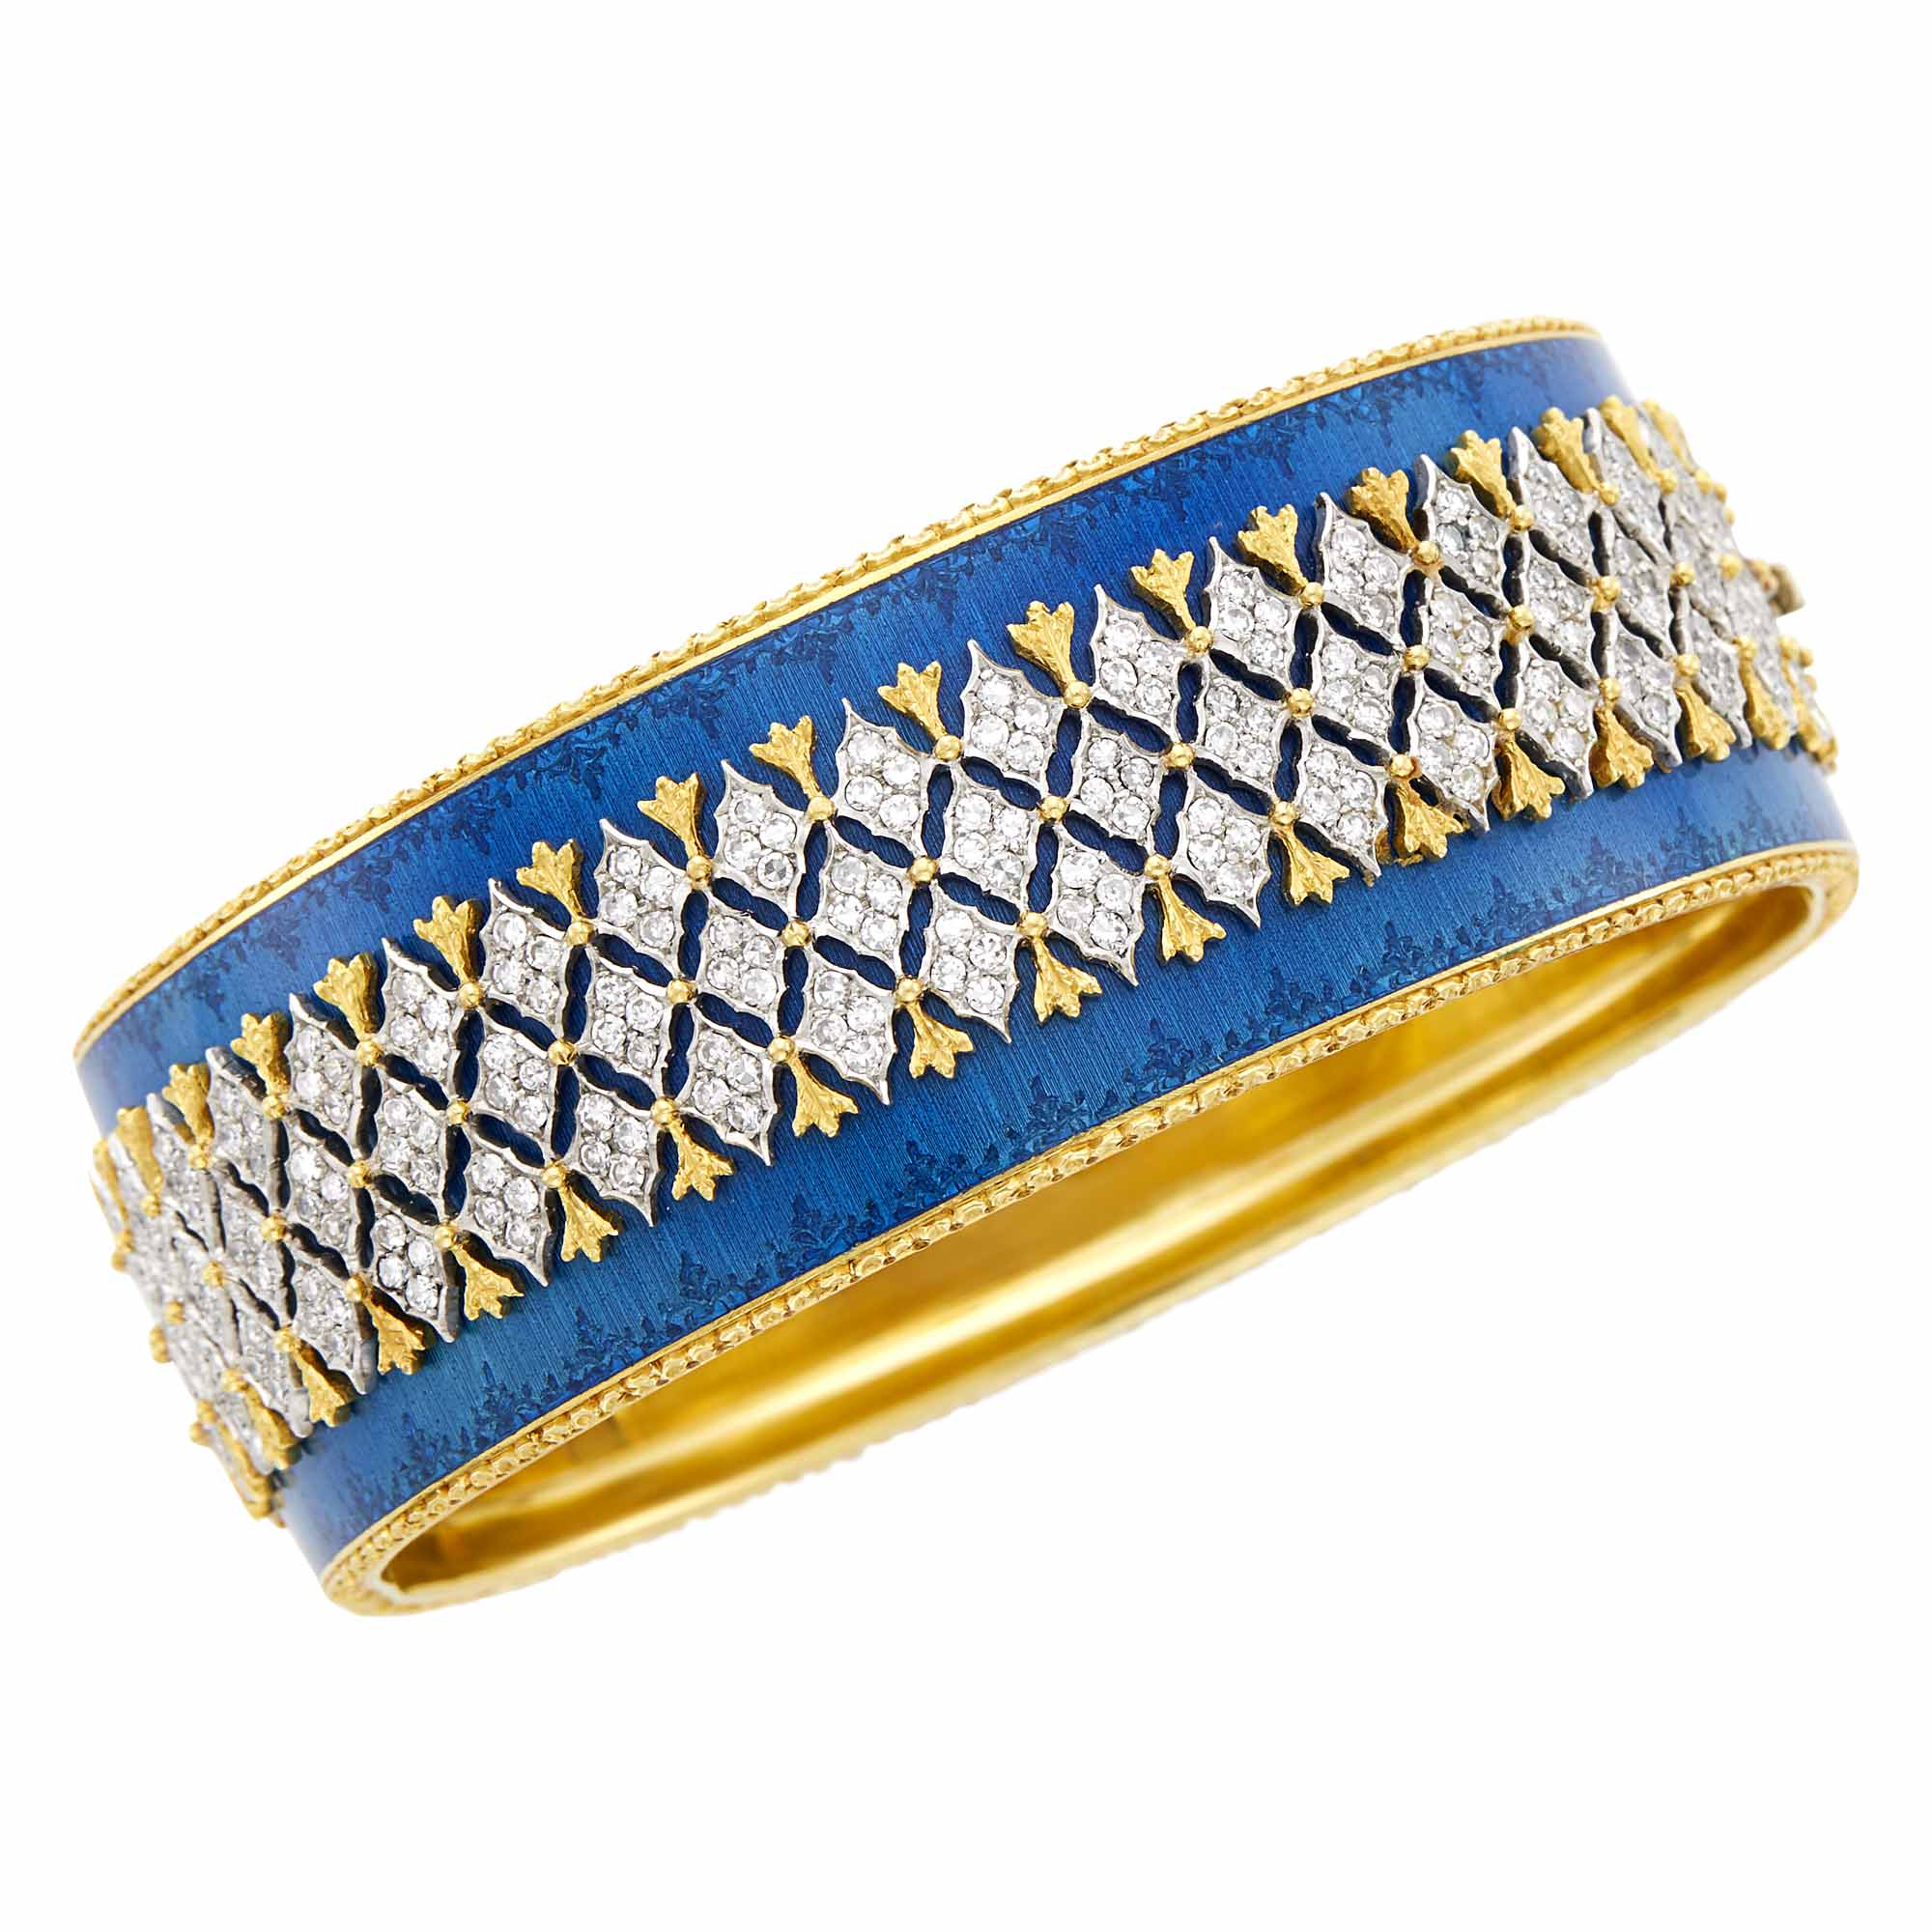 Lot image - Gianmaria Buccellati Two-Color Gold, Diamond and Blue Enamel Cuff Bangle Bracelet